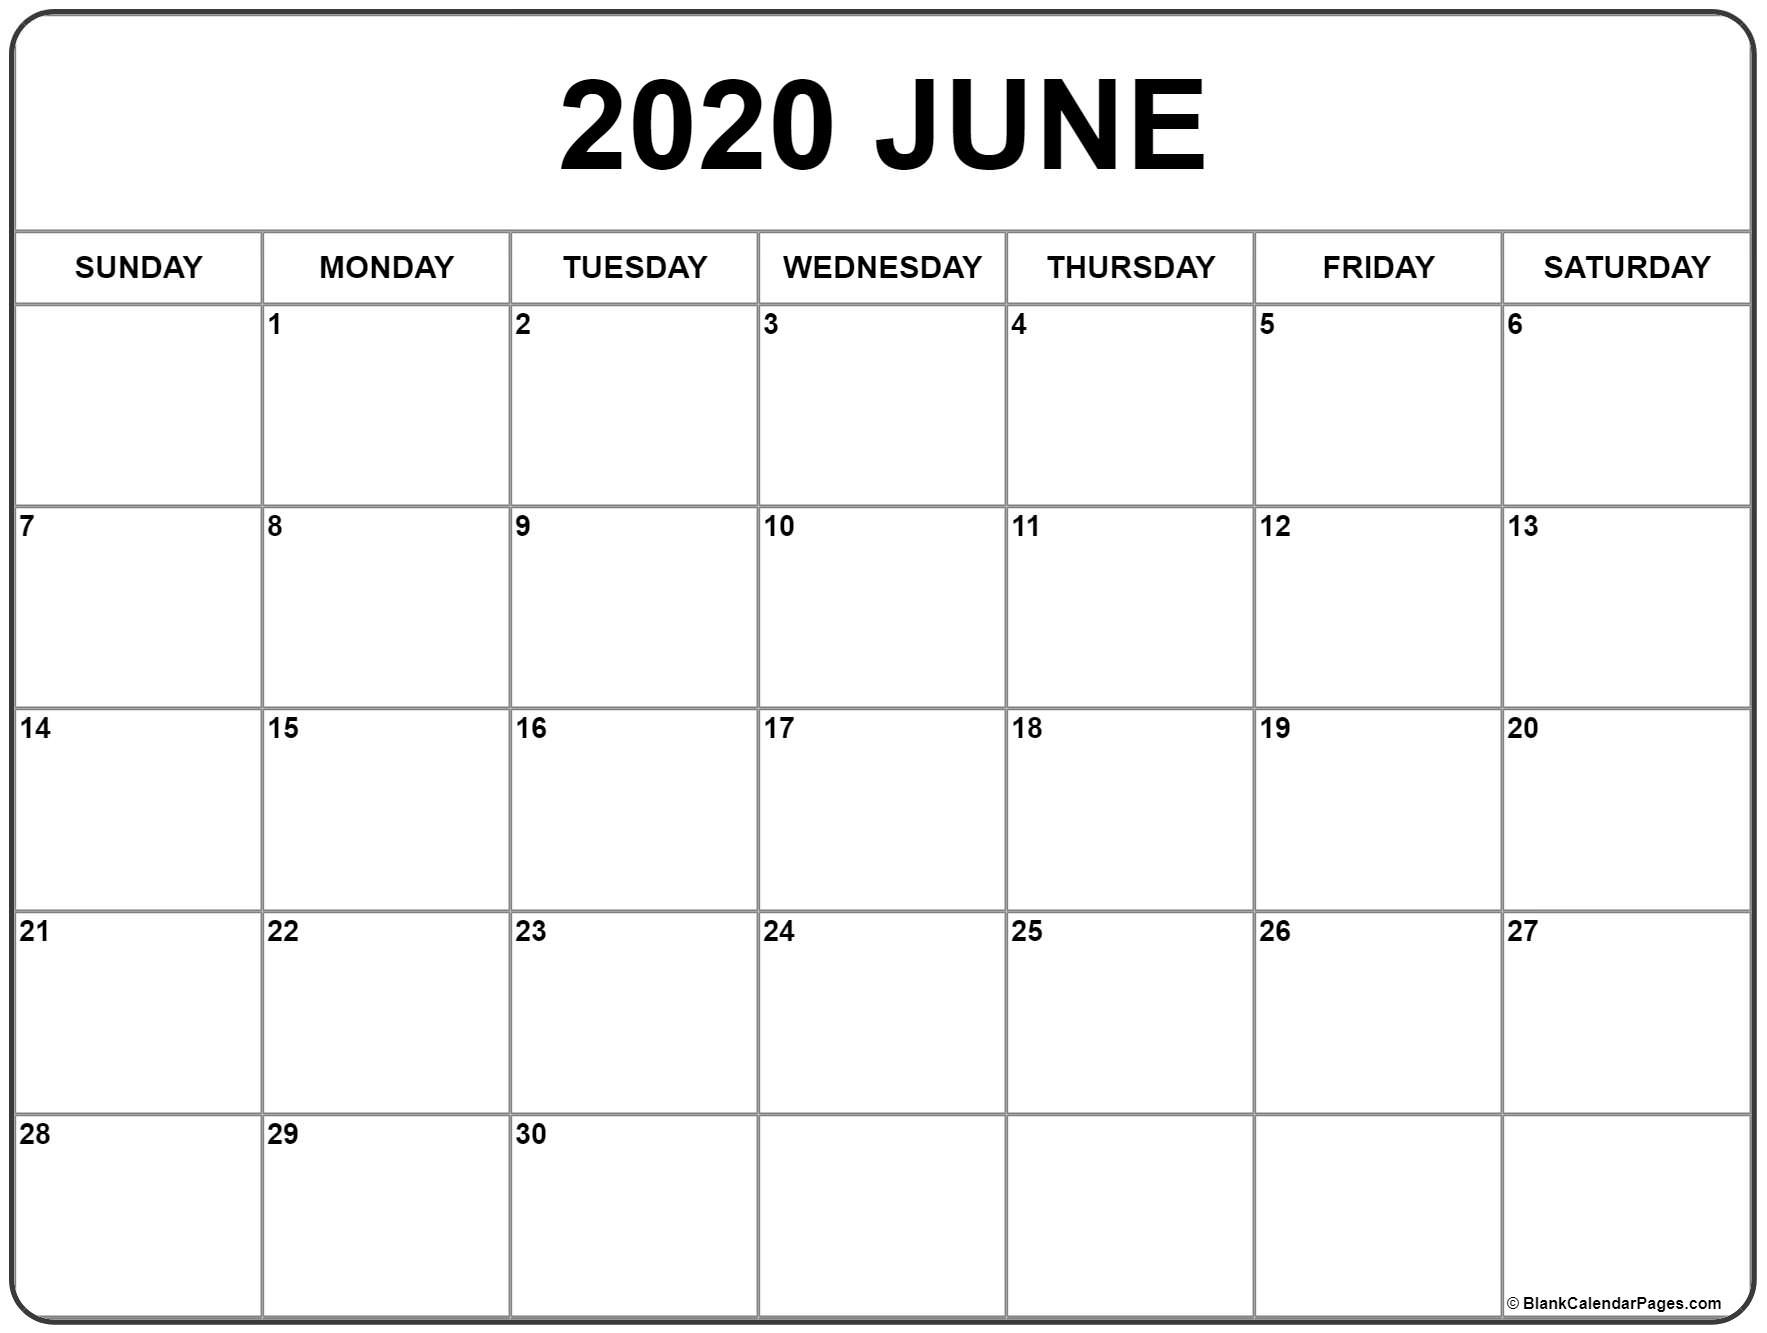 June 2020 Calendar | Free Printable Monthly Calendars  Calendar To Write On 2020